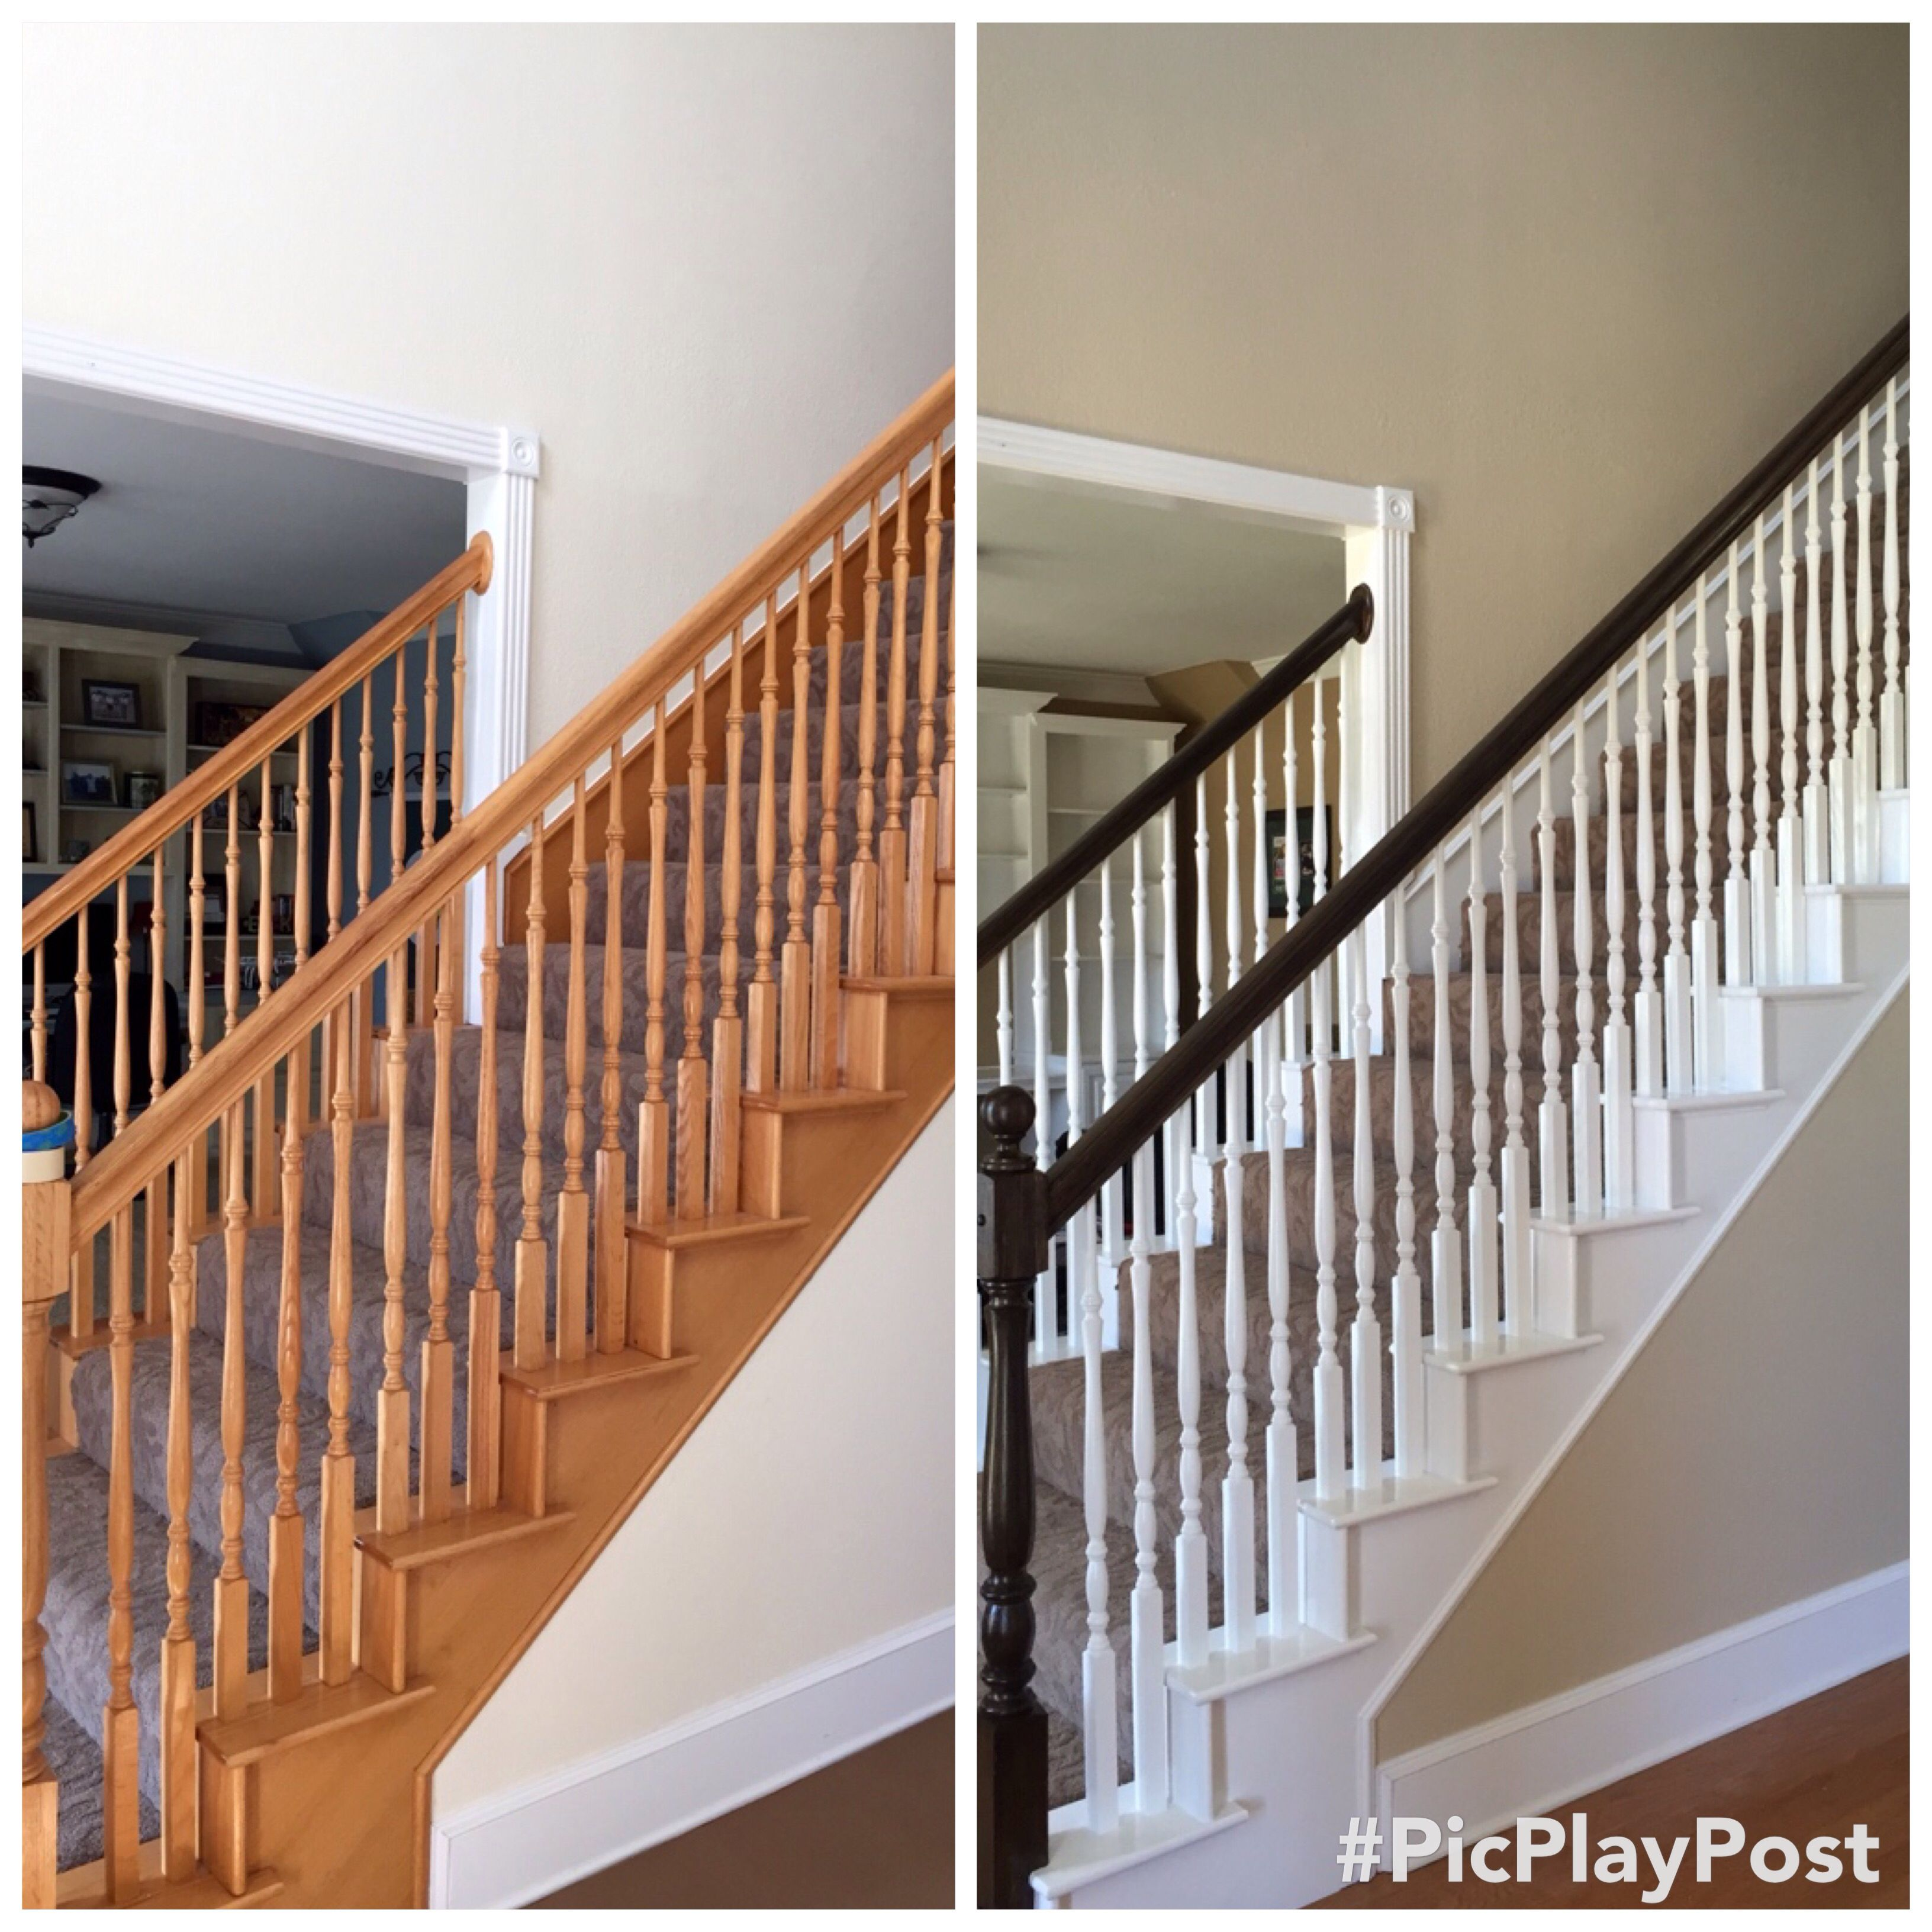 Oak staircase makeover stair banister banisters interior stair railing railings for stairs